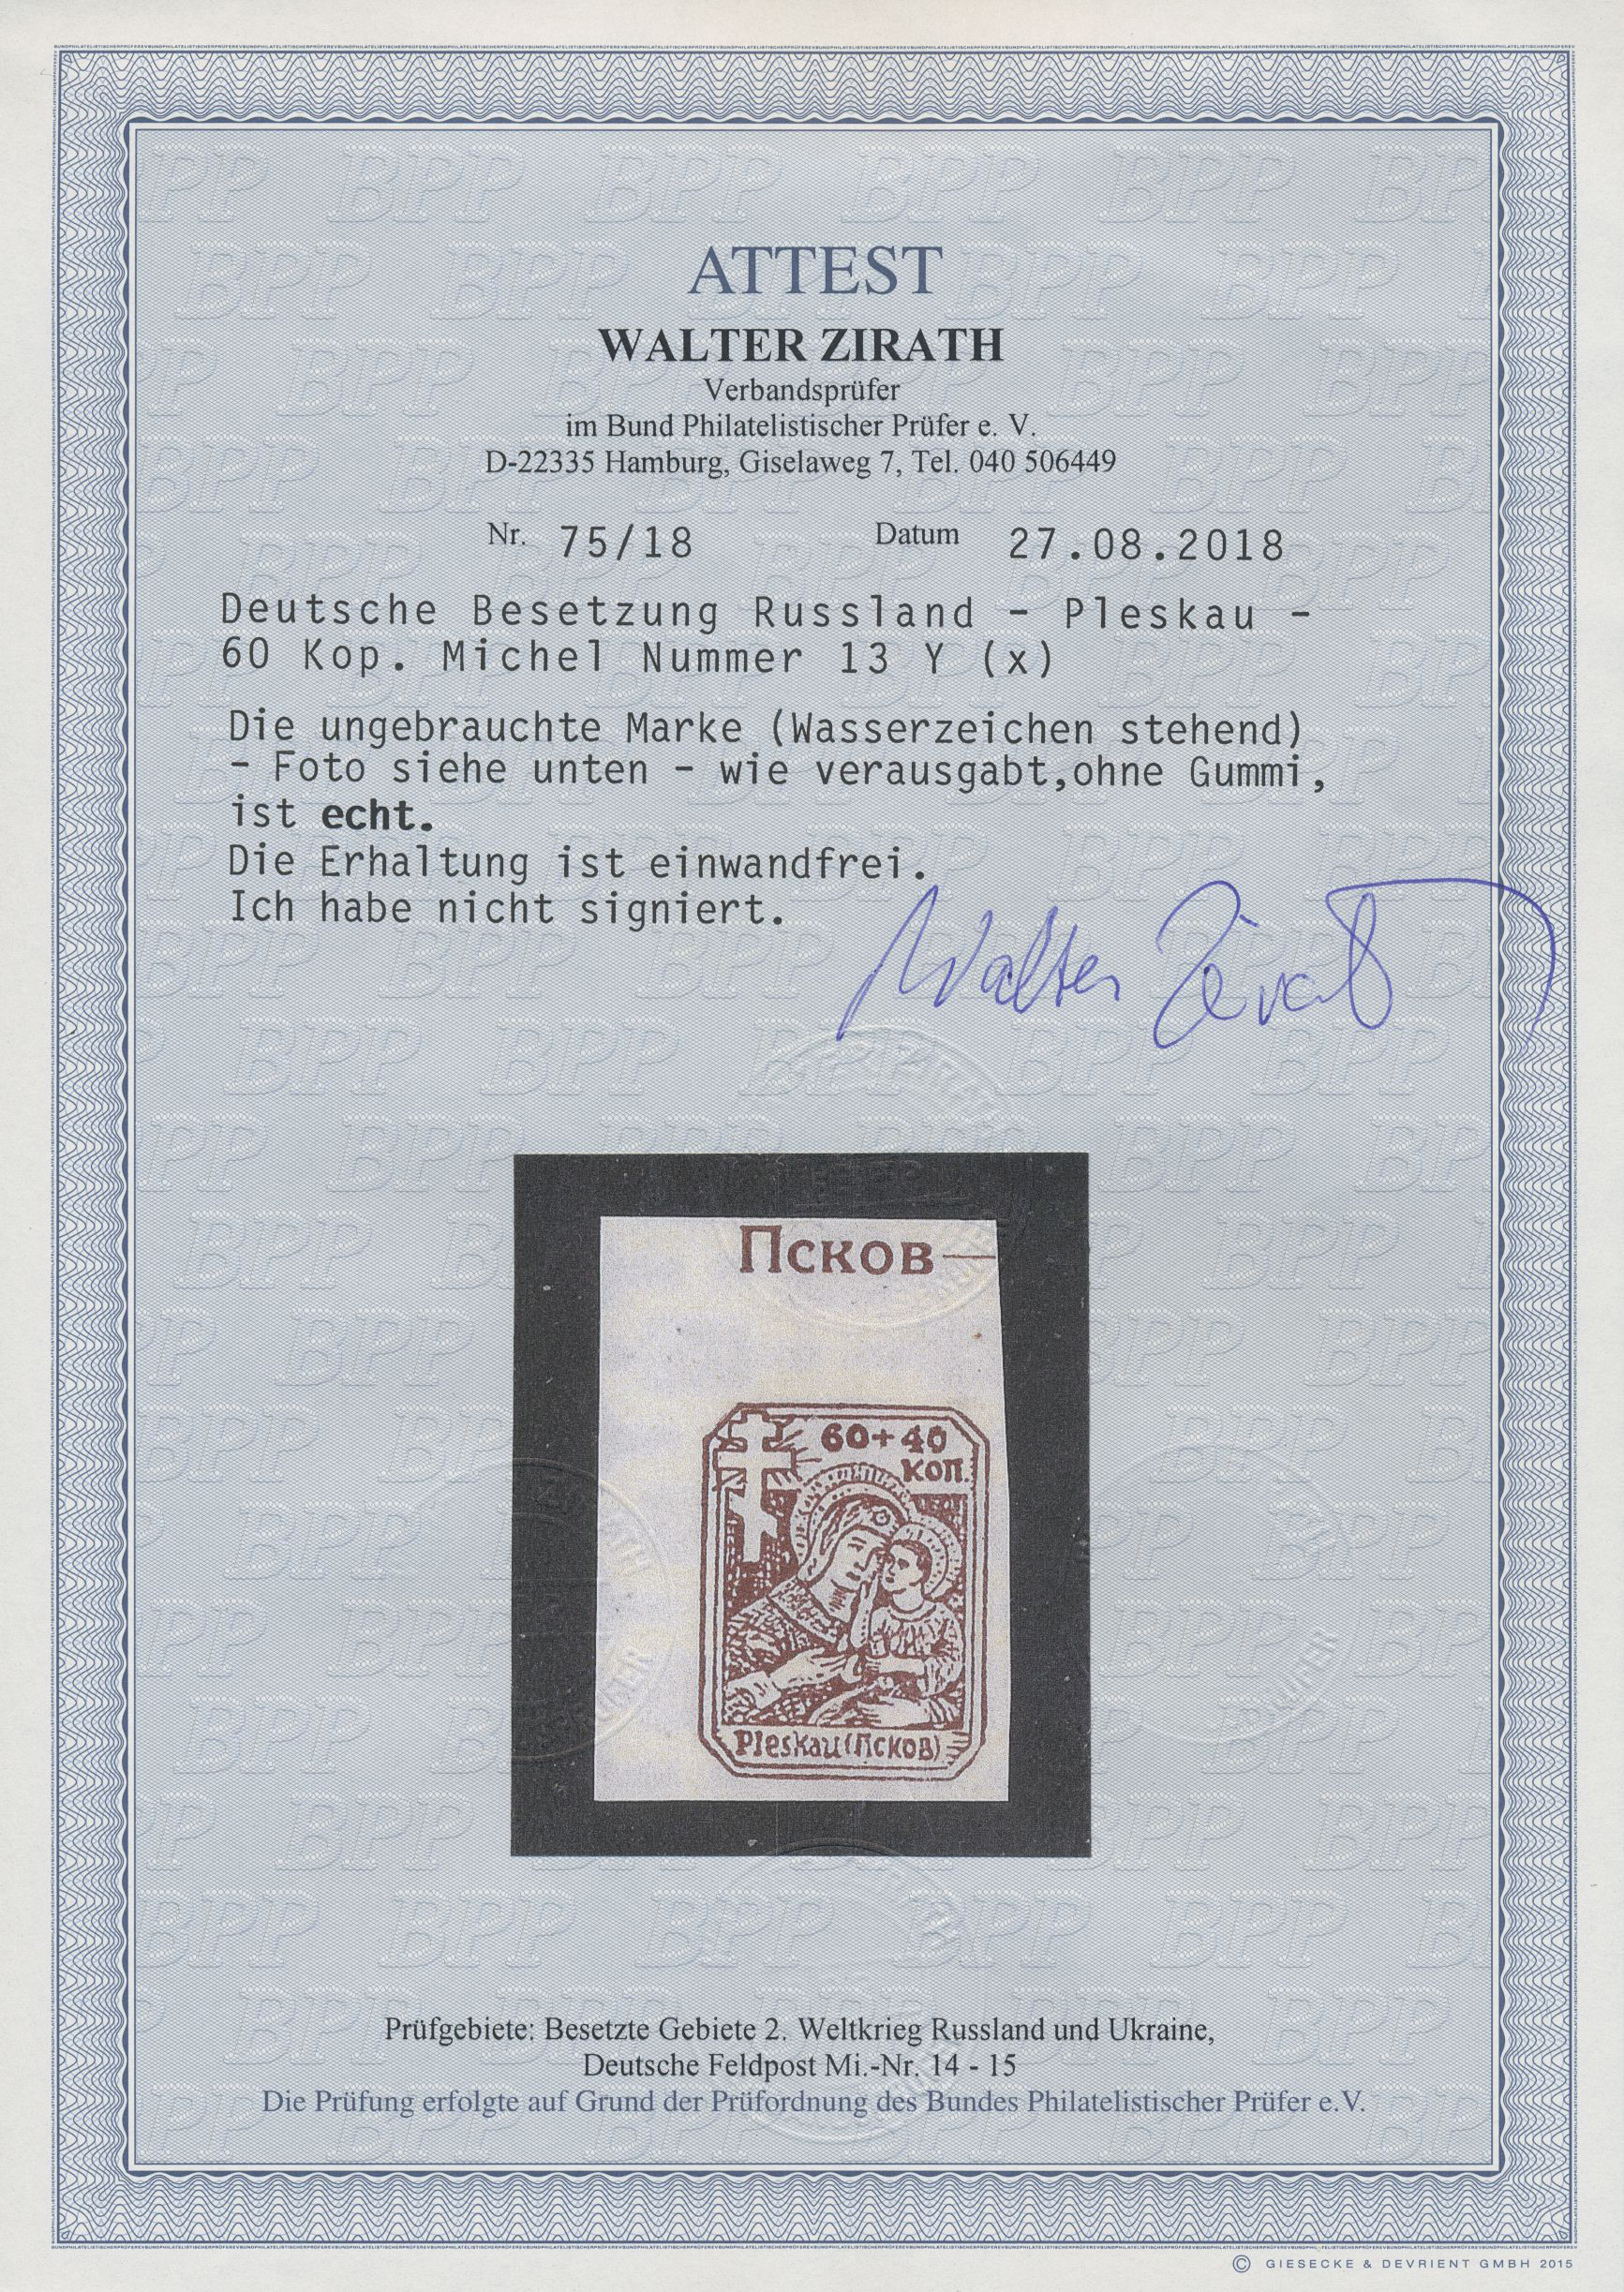 Lot 00222 - Dt. Besetzung II WK - Russland - Pleskau (Pskow)  -  Auktionshaus Christoph Gärtner GmbH & Co. KG Intenational Rarities and contains lots from the collection of Peter Zgonc